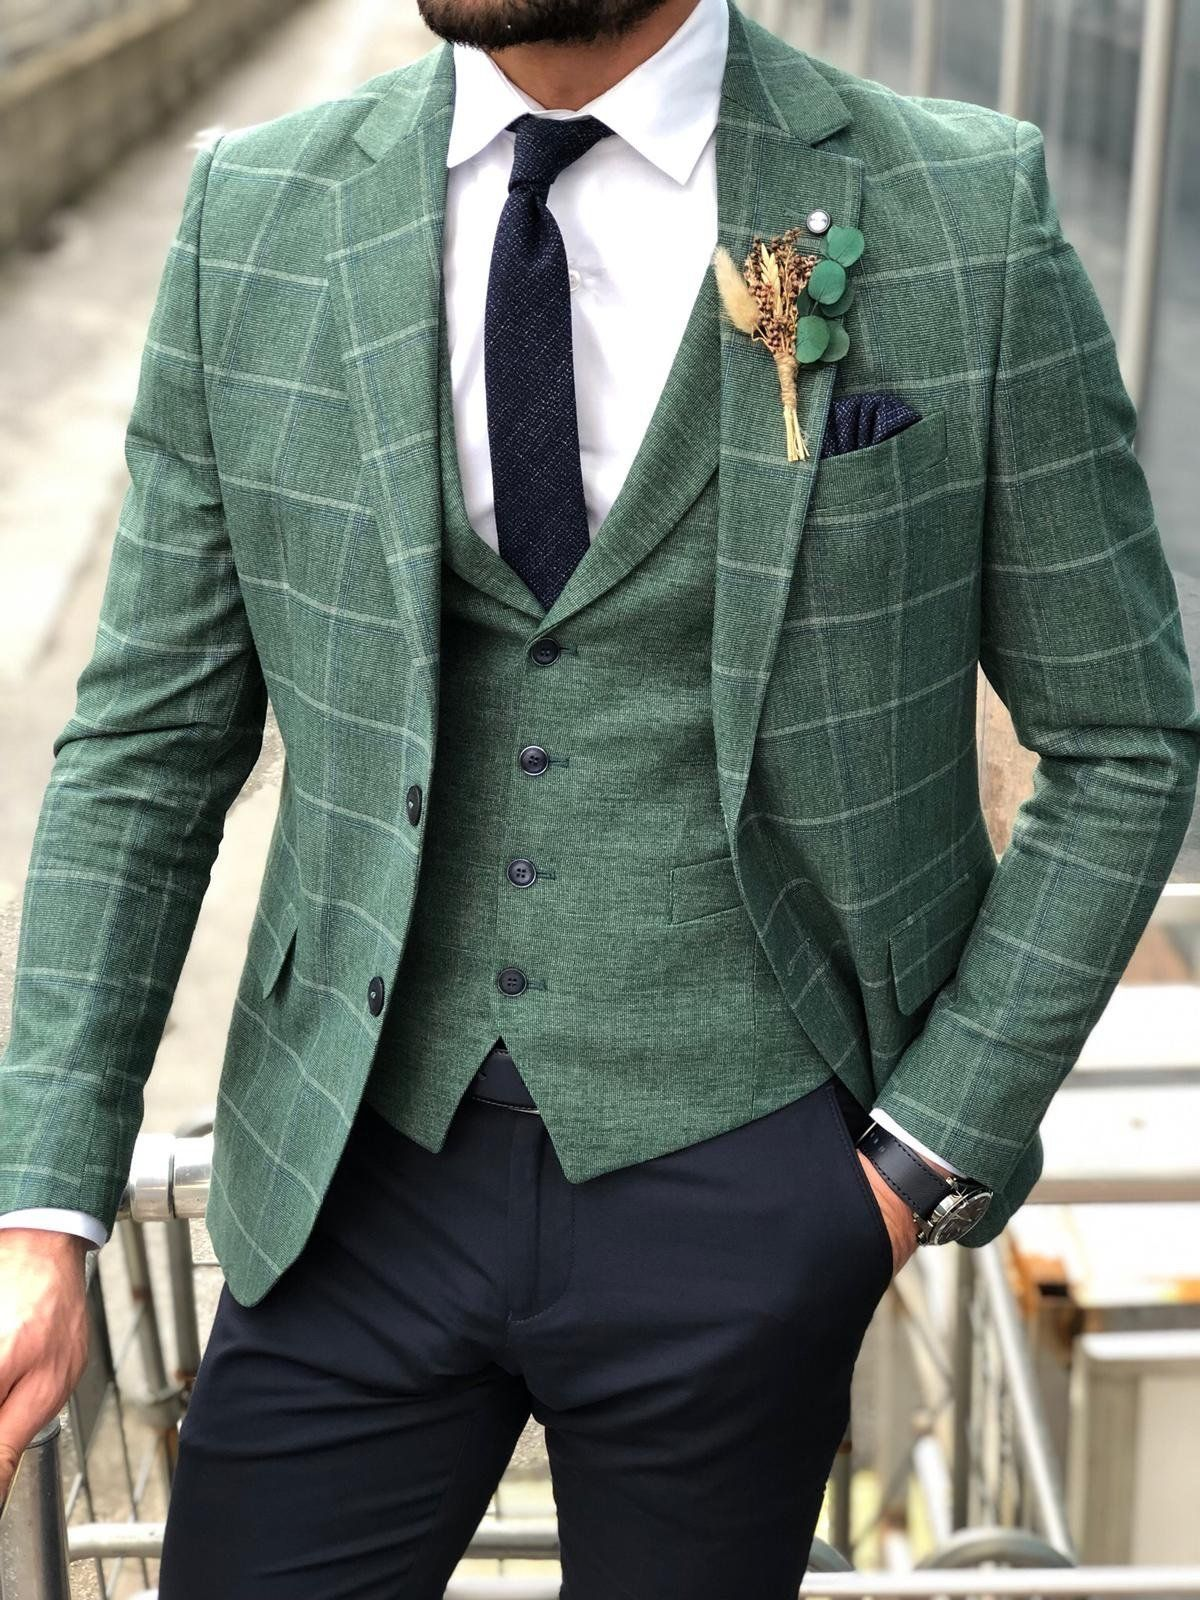 Mens suit vests green jiqin investment banking